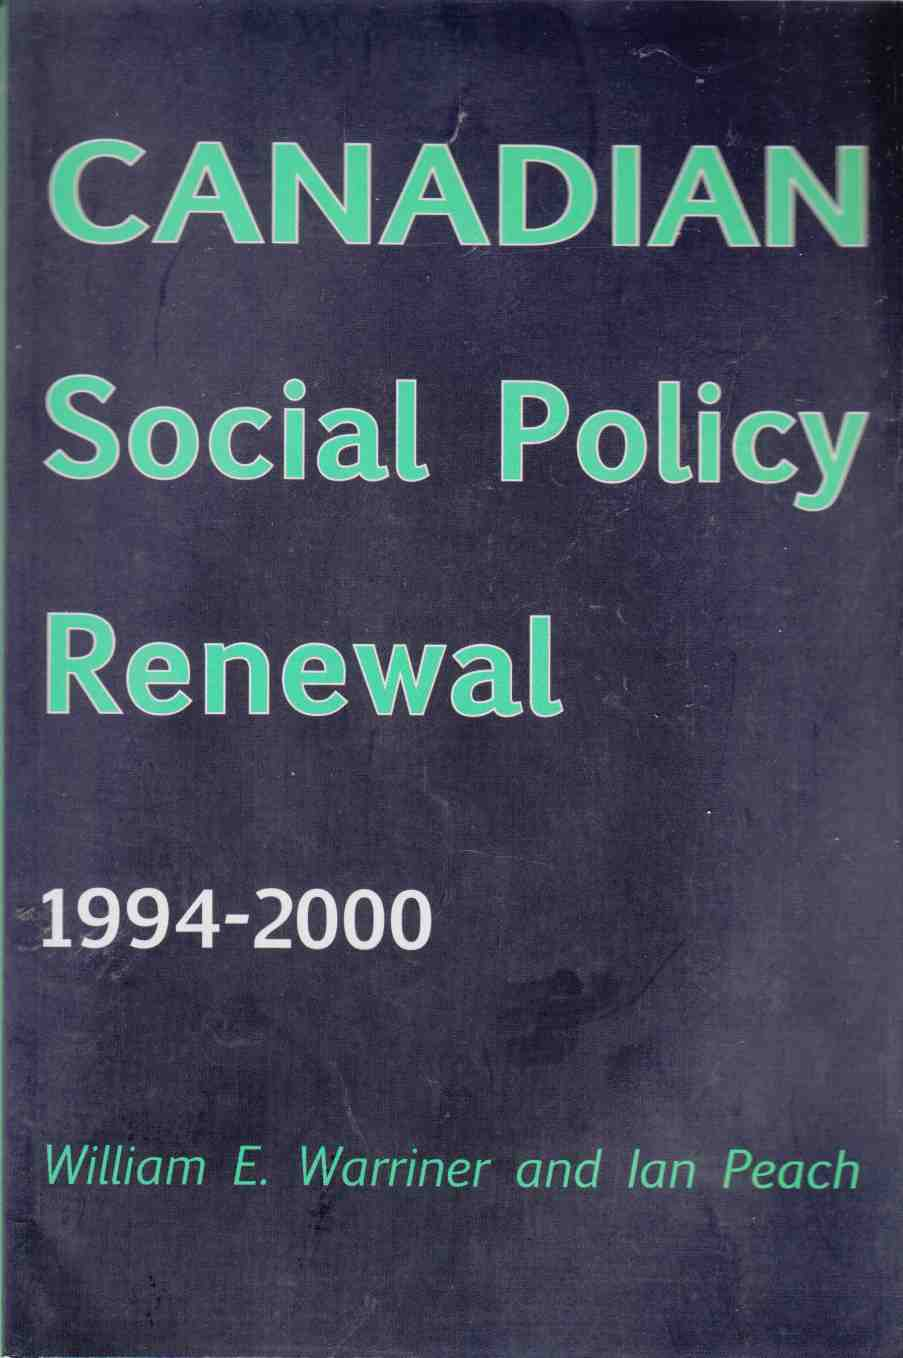 Image for Canadian Social Policy Renewal 1994 - 2000